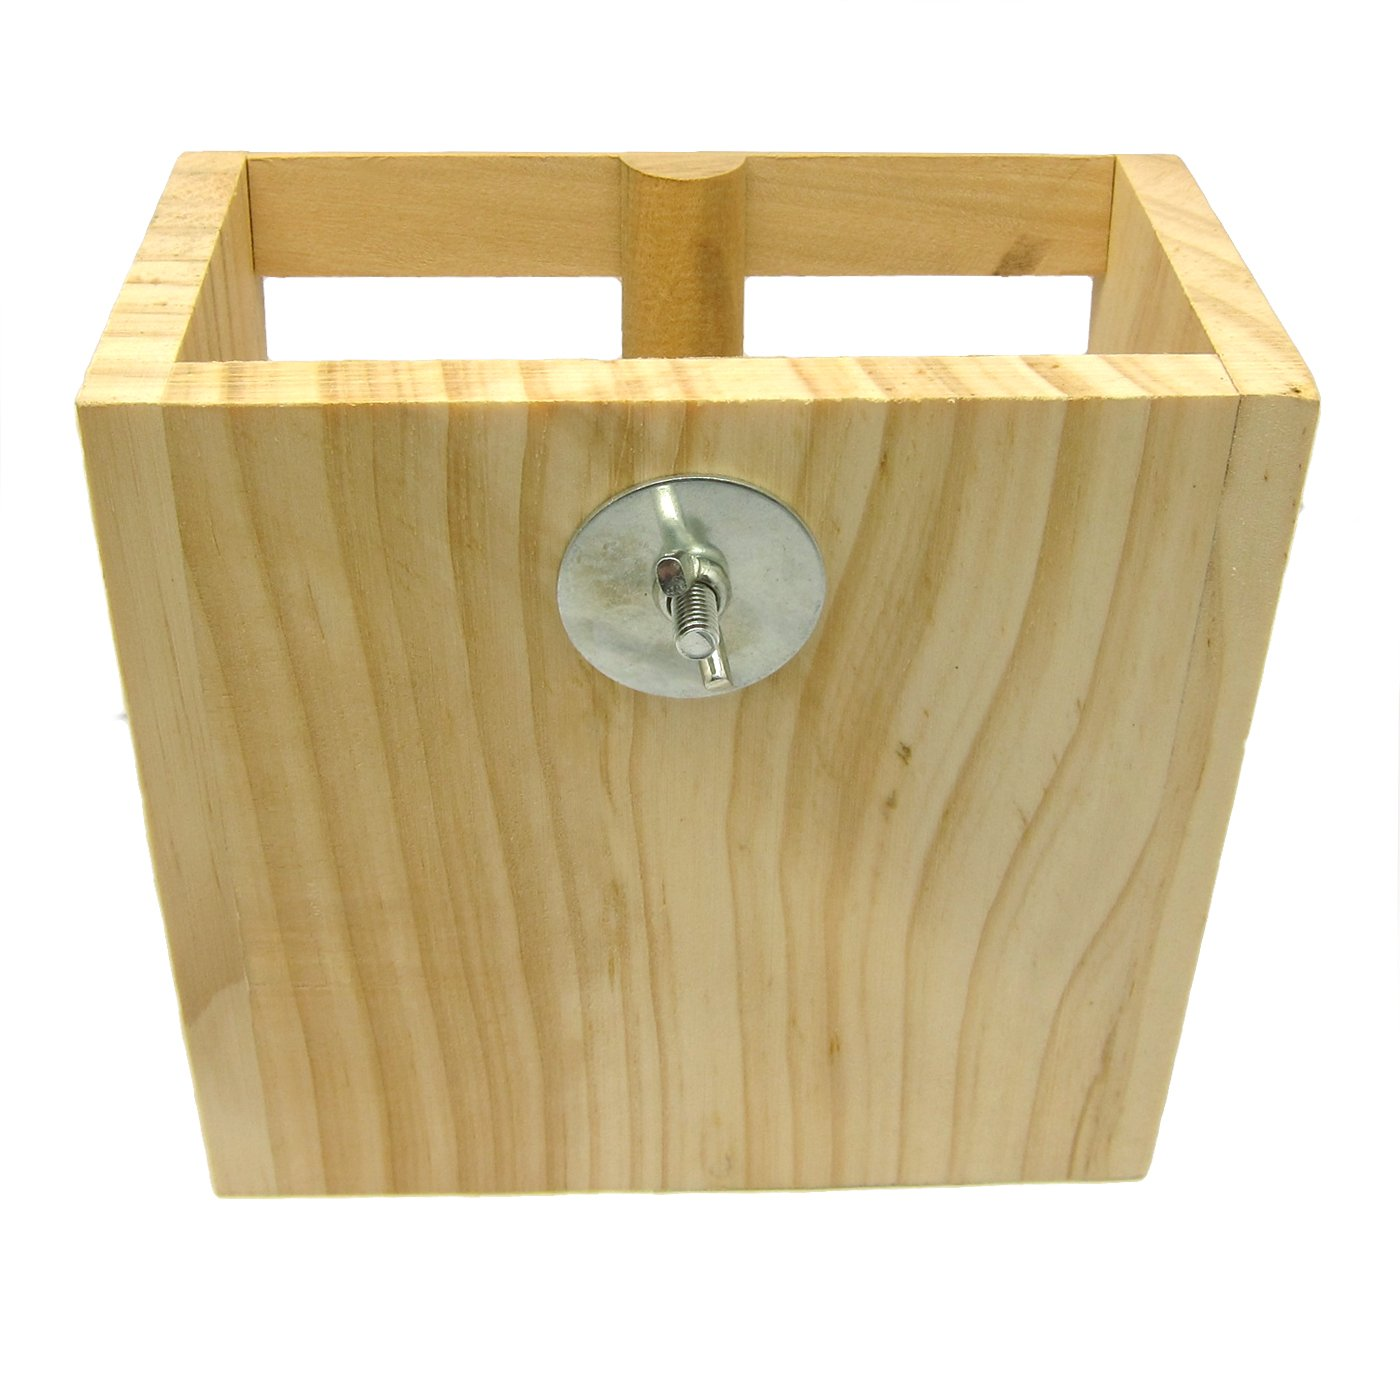 Alfie Pet by Petoga Couture - Sean Wood Hay Manger Feeder for Mouse, Chinchilla, Rat, Gerbil and Dwarf Hamster by Alfie (Image #5)